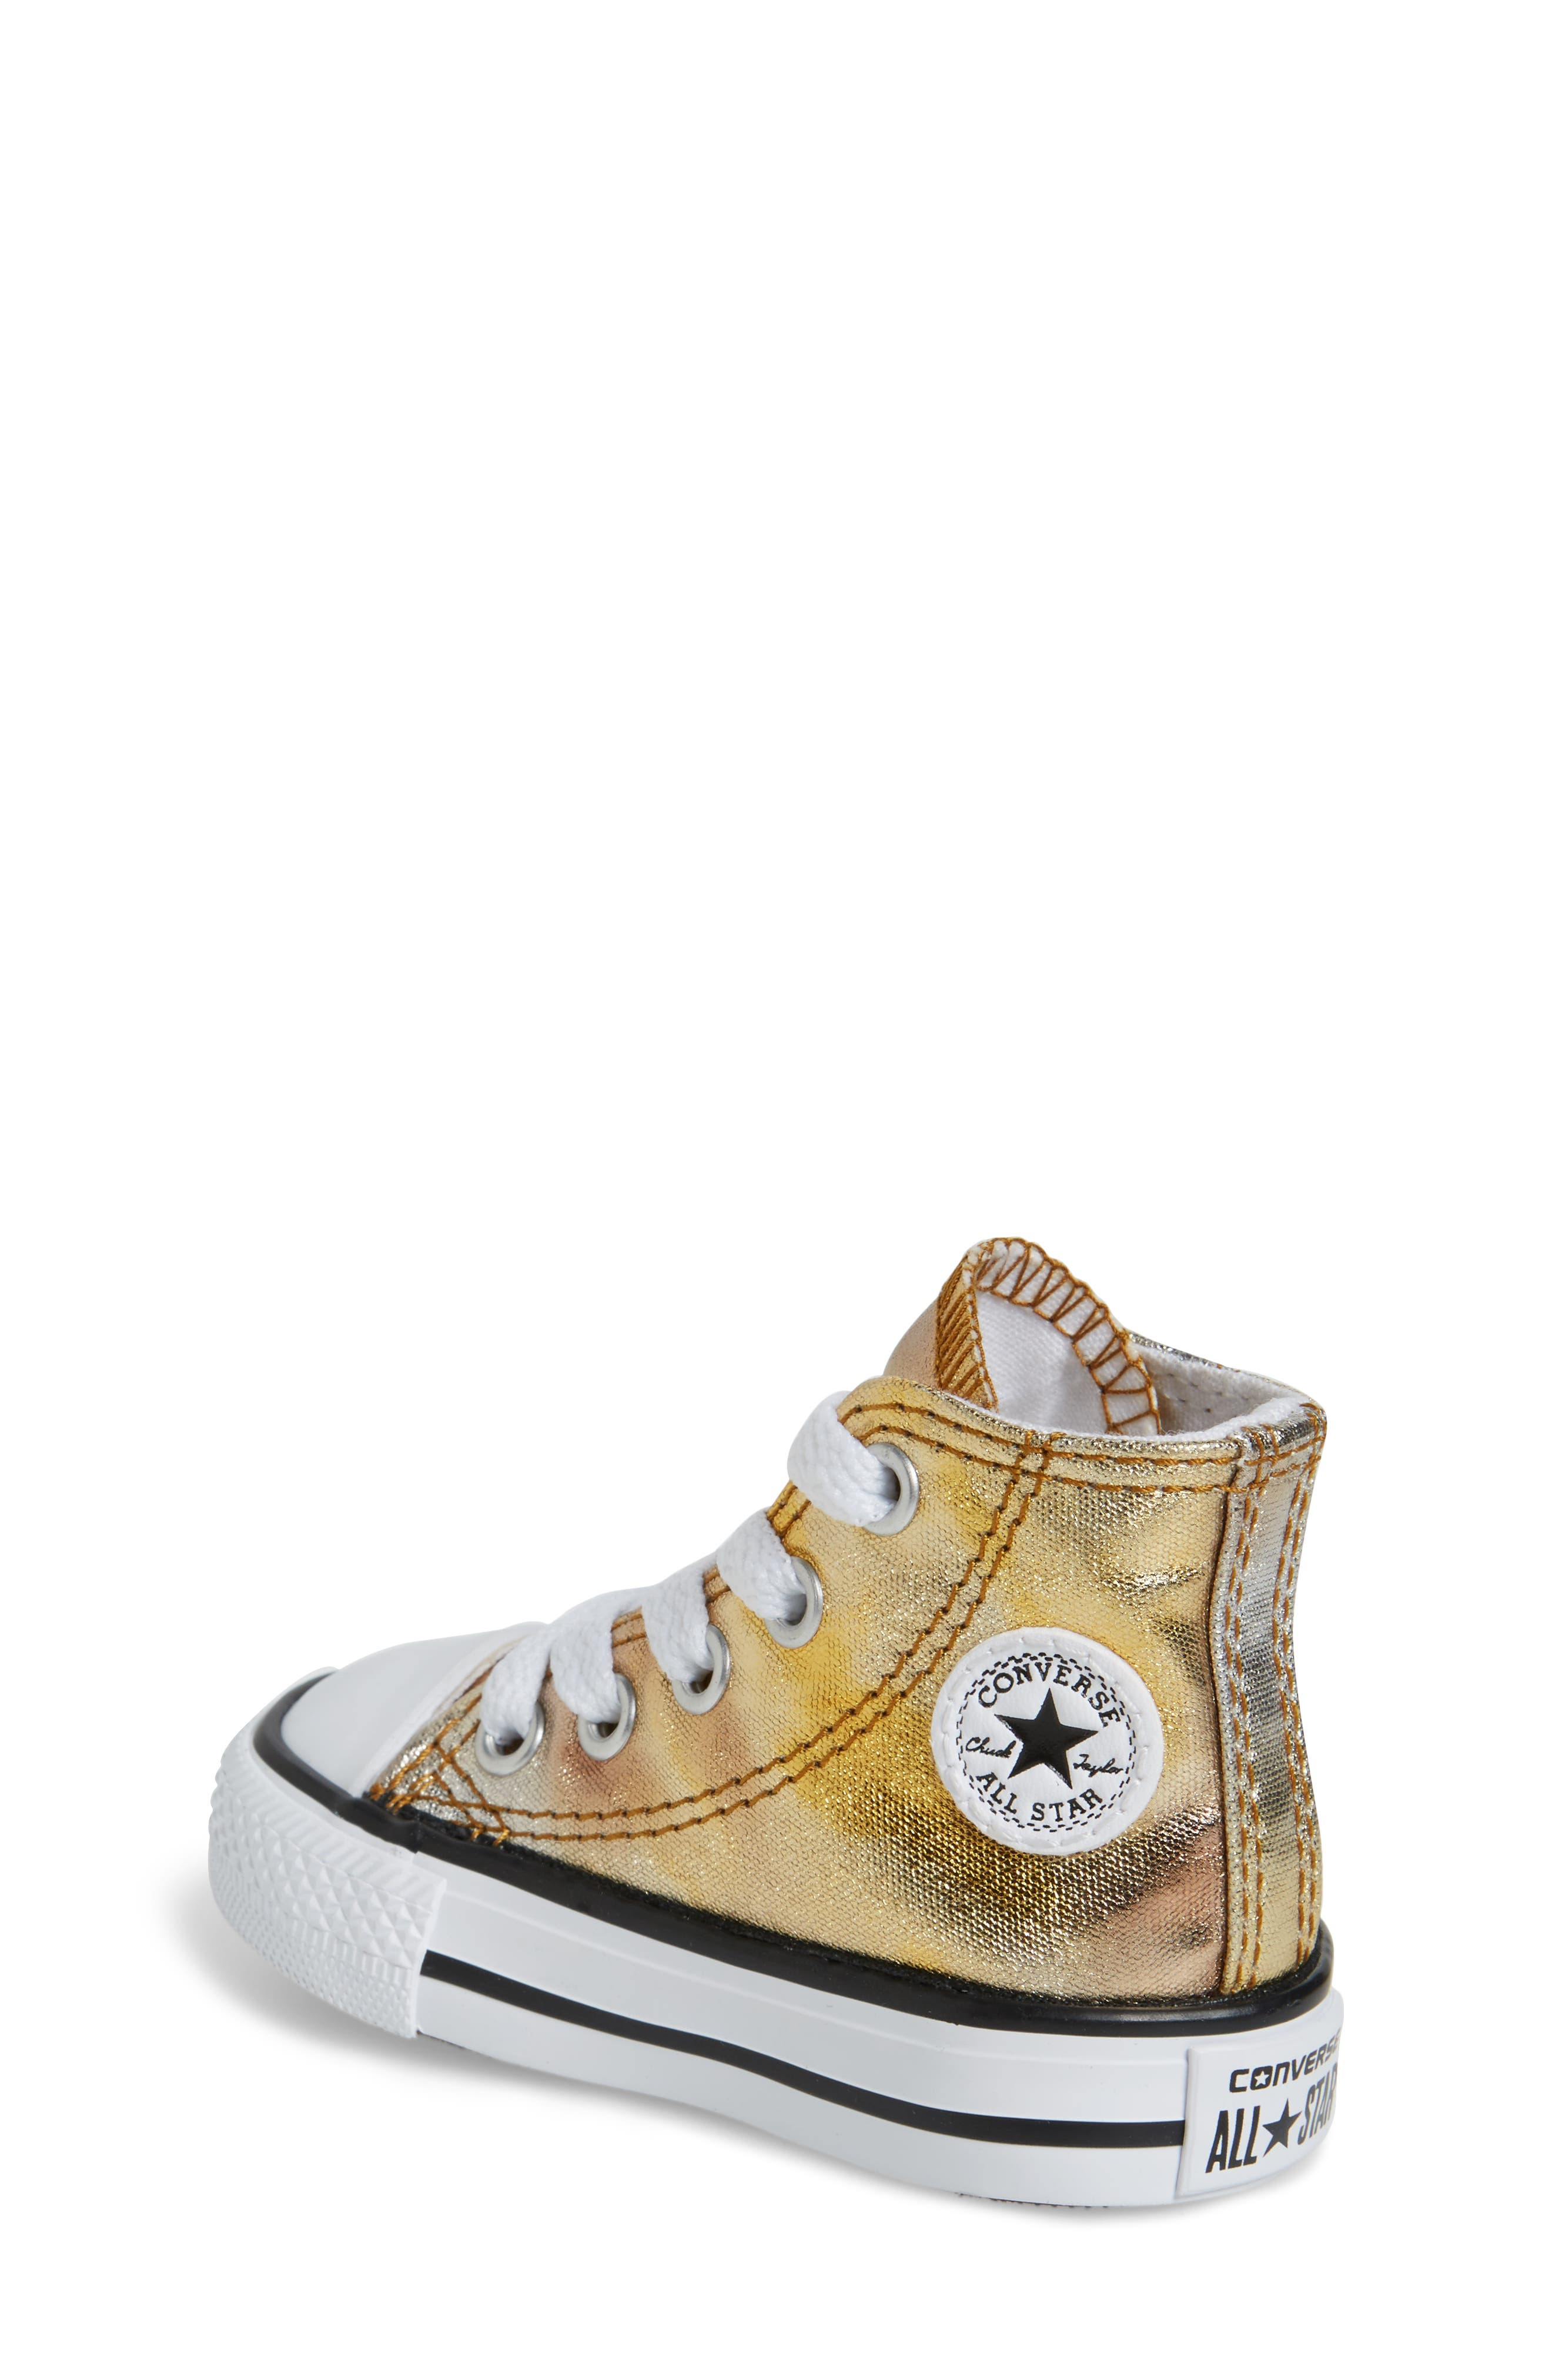 Chuck Taylor<sup>®</sup> All Star<sup>®</sup> Metallic High Top Sneaker,                             Alternate thumbnail 4, color,